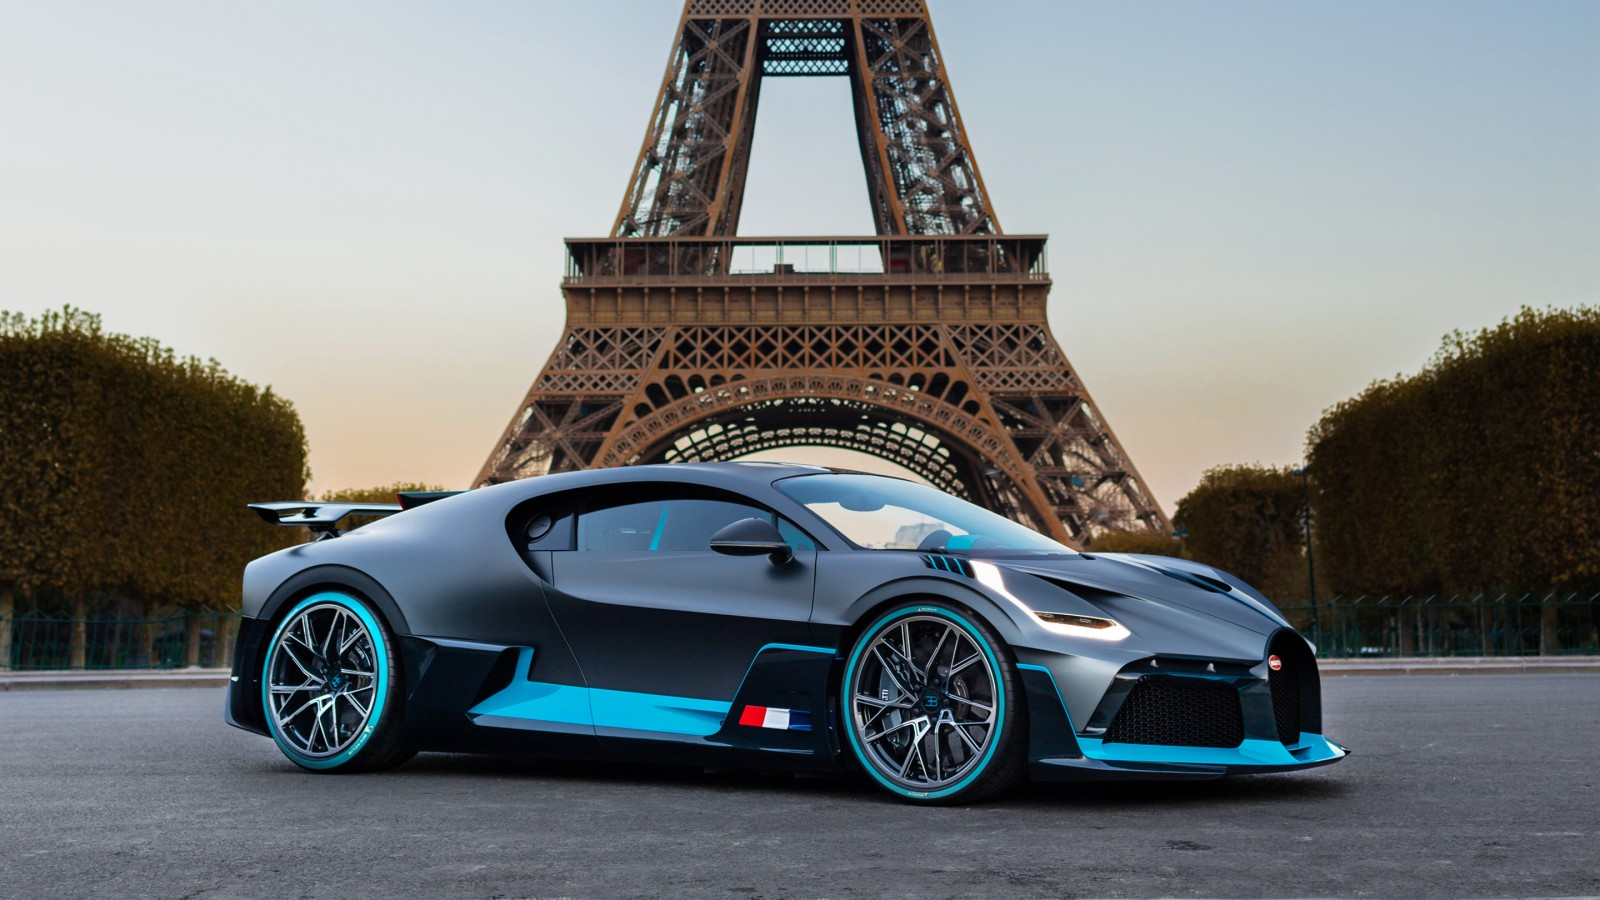 Bmw Car Pc Wallpapers Bugatti Divo In Paris Wallpaper Hd Car Wallpapers Id